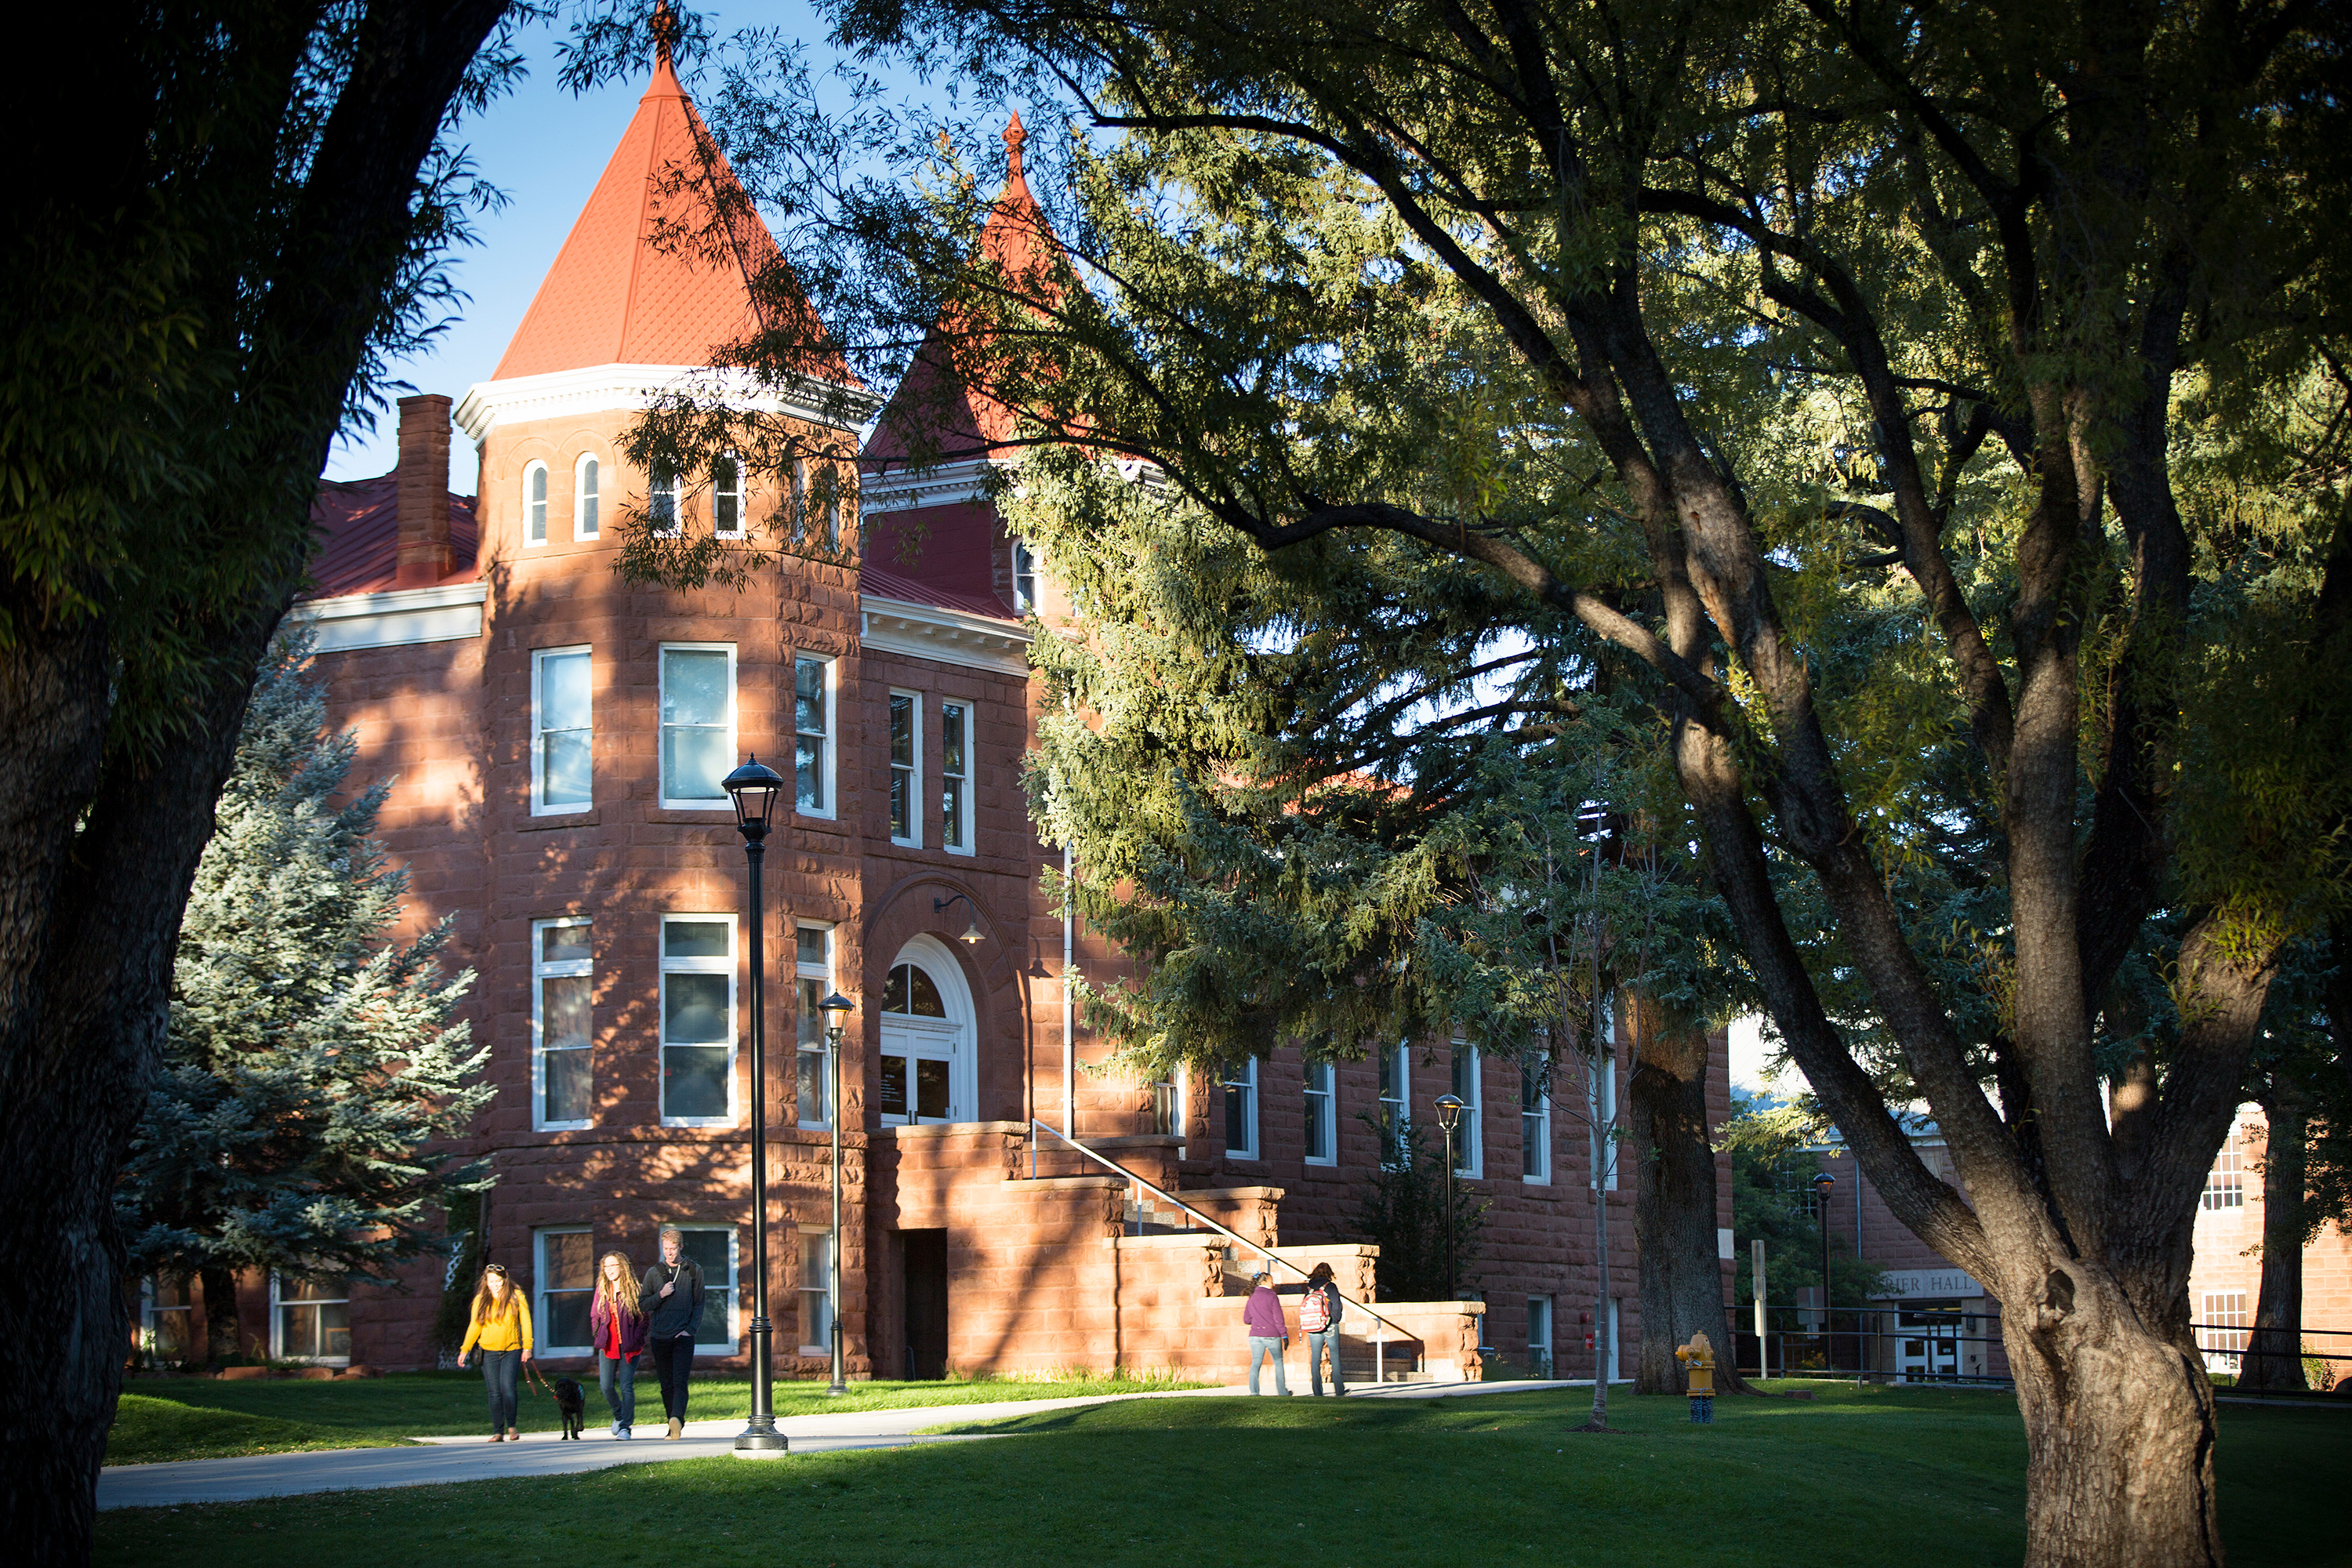 Photo of Old Main on NAU campus with students walking in the foreground